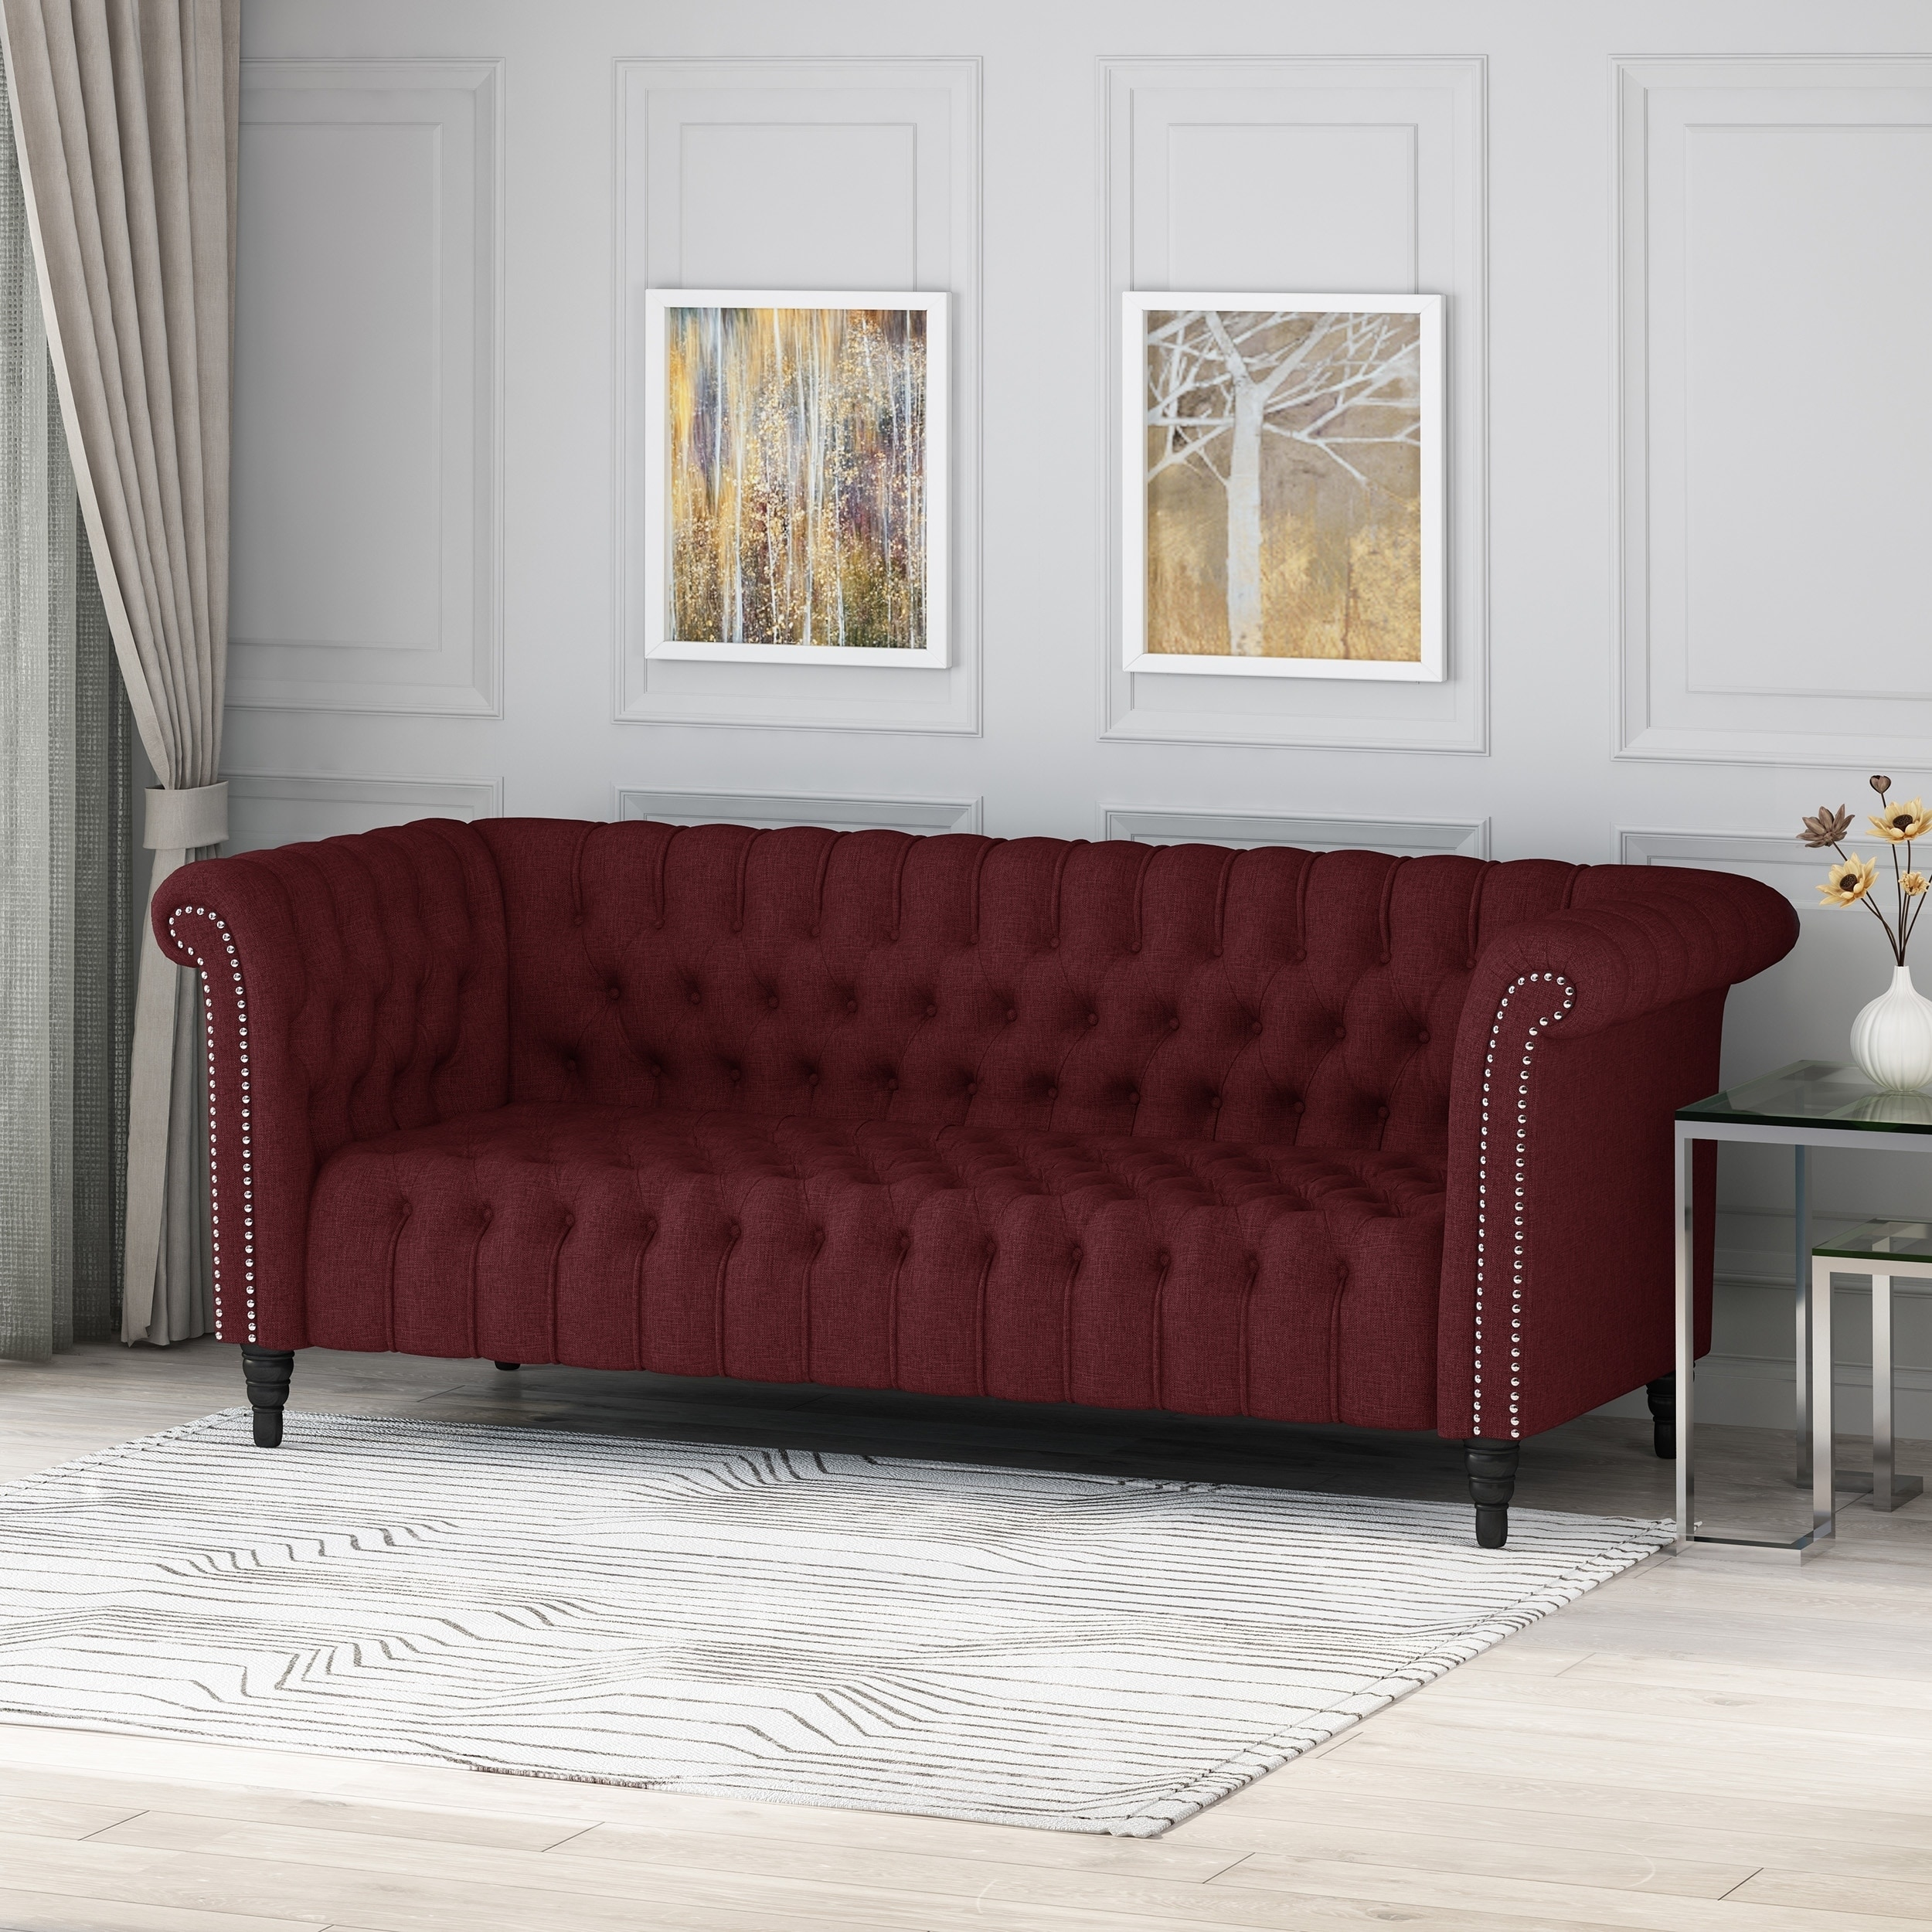 Chesterfield Style Sofas